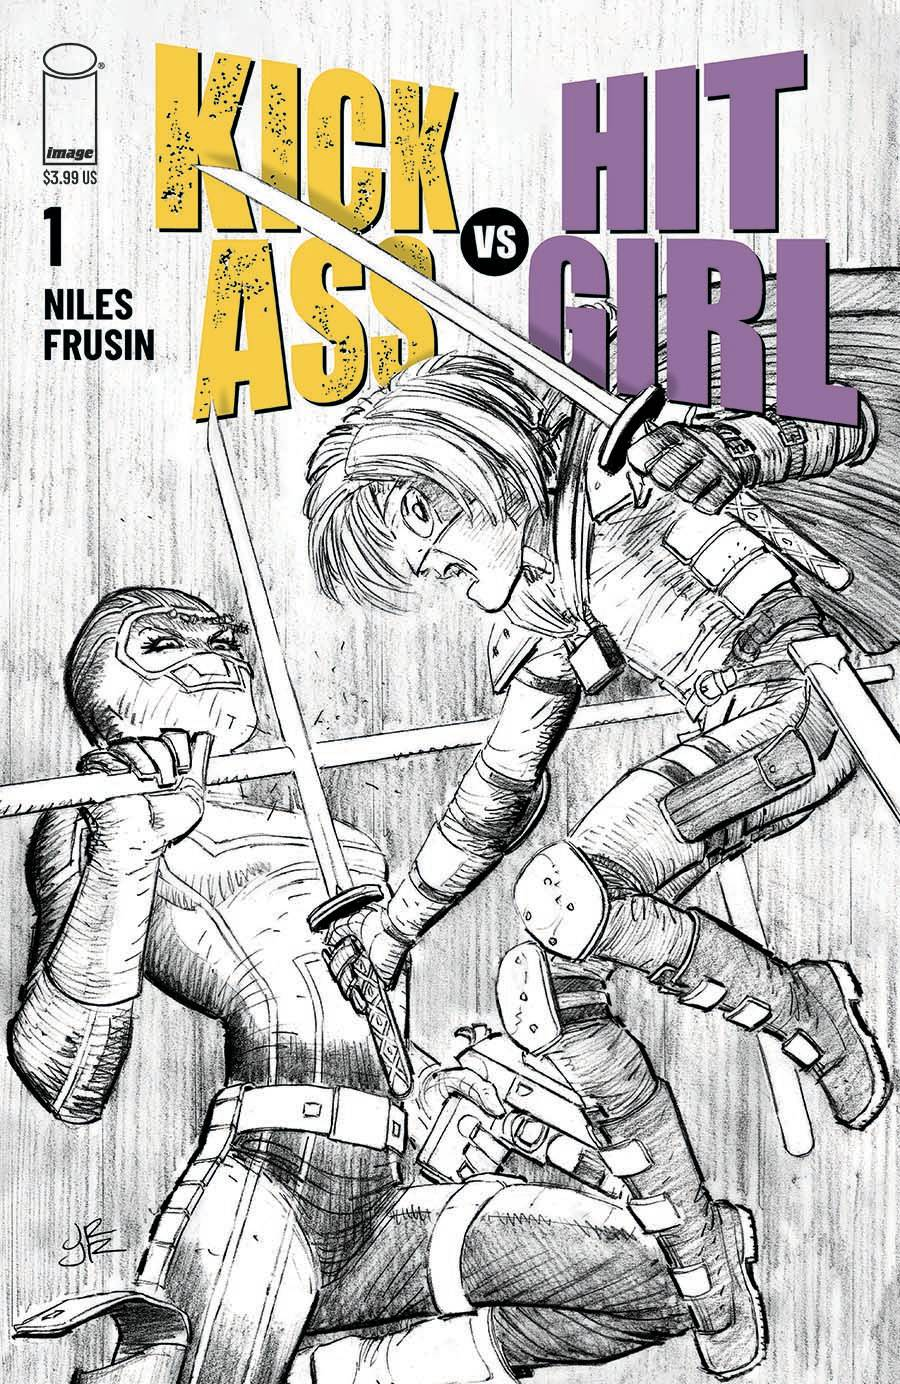 KICK-ASS VS HIT-GIRL #1 (OF 5) CVR B ROMITA JR (RES) (MR)